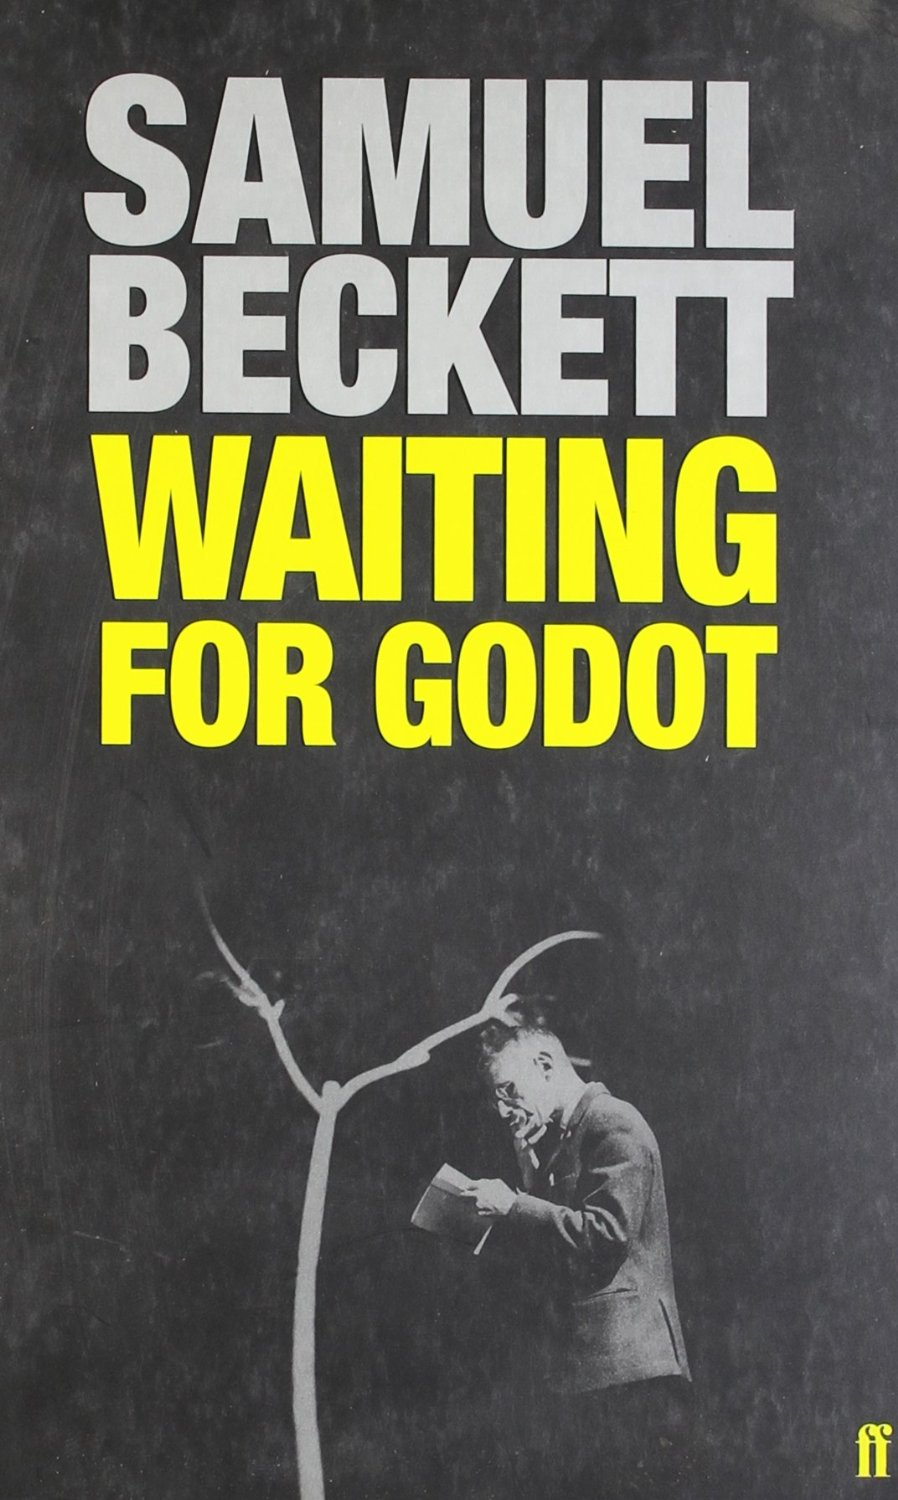 dragon the best nonfiction books no waiting for godot the 100 best nonfiction books no 29 waiting for godot by samuel beckett 1952 53